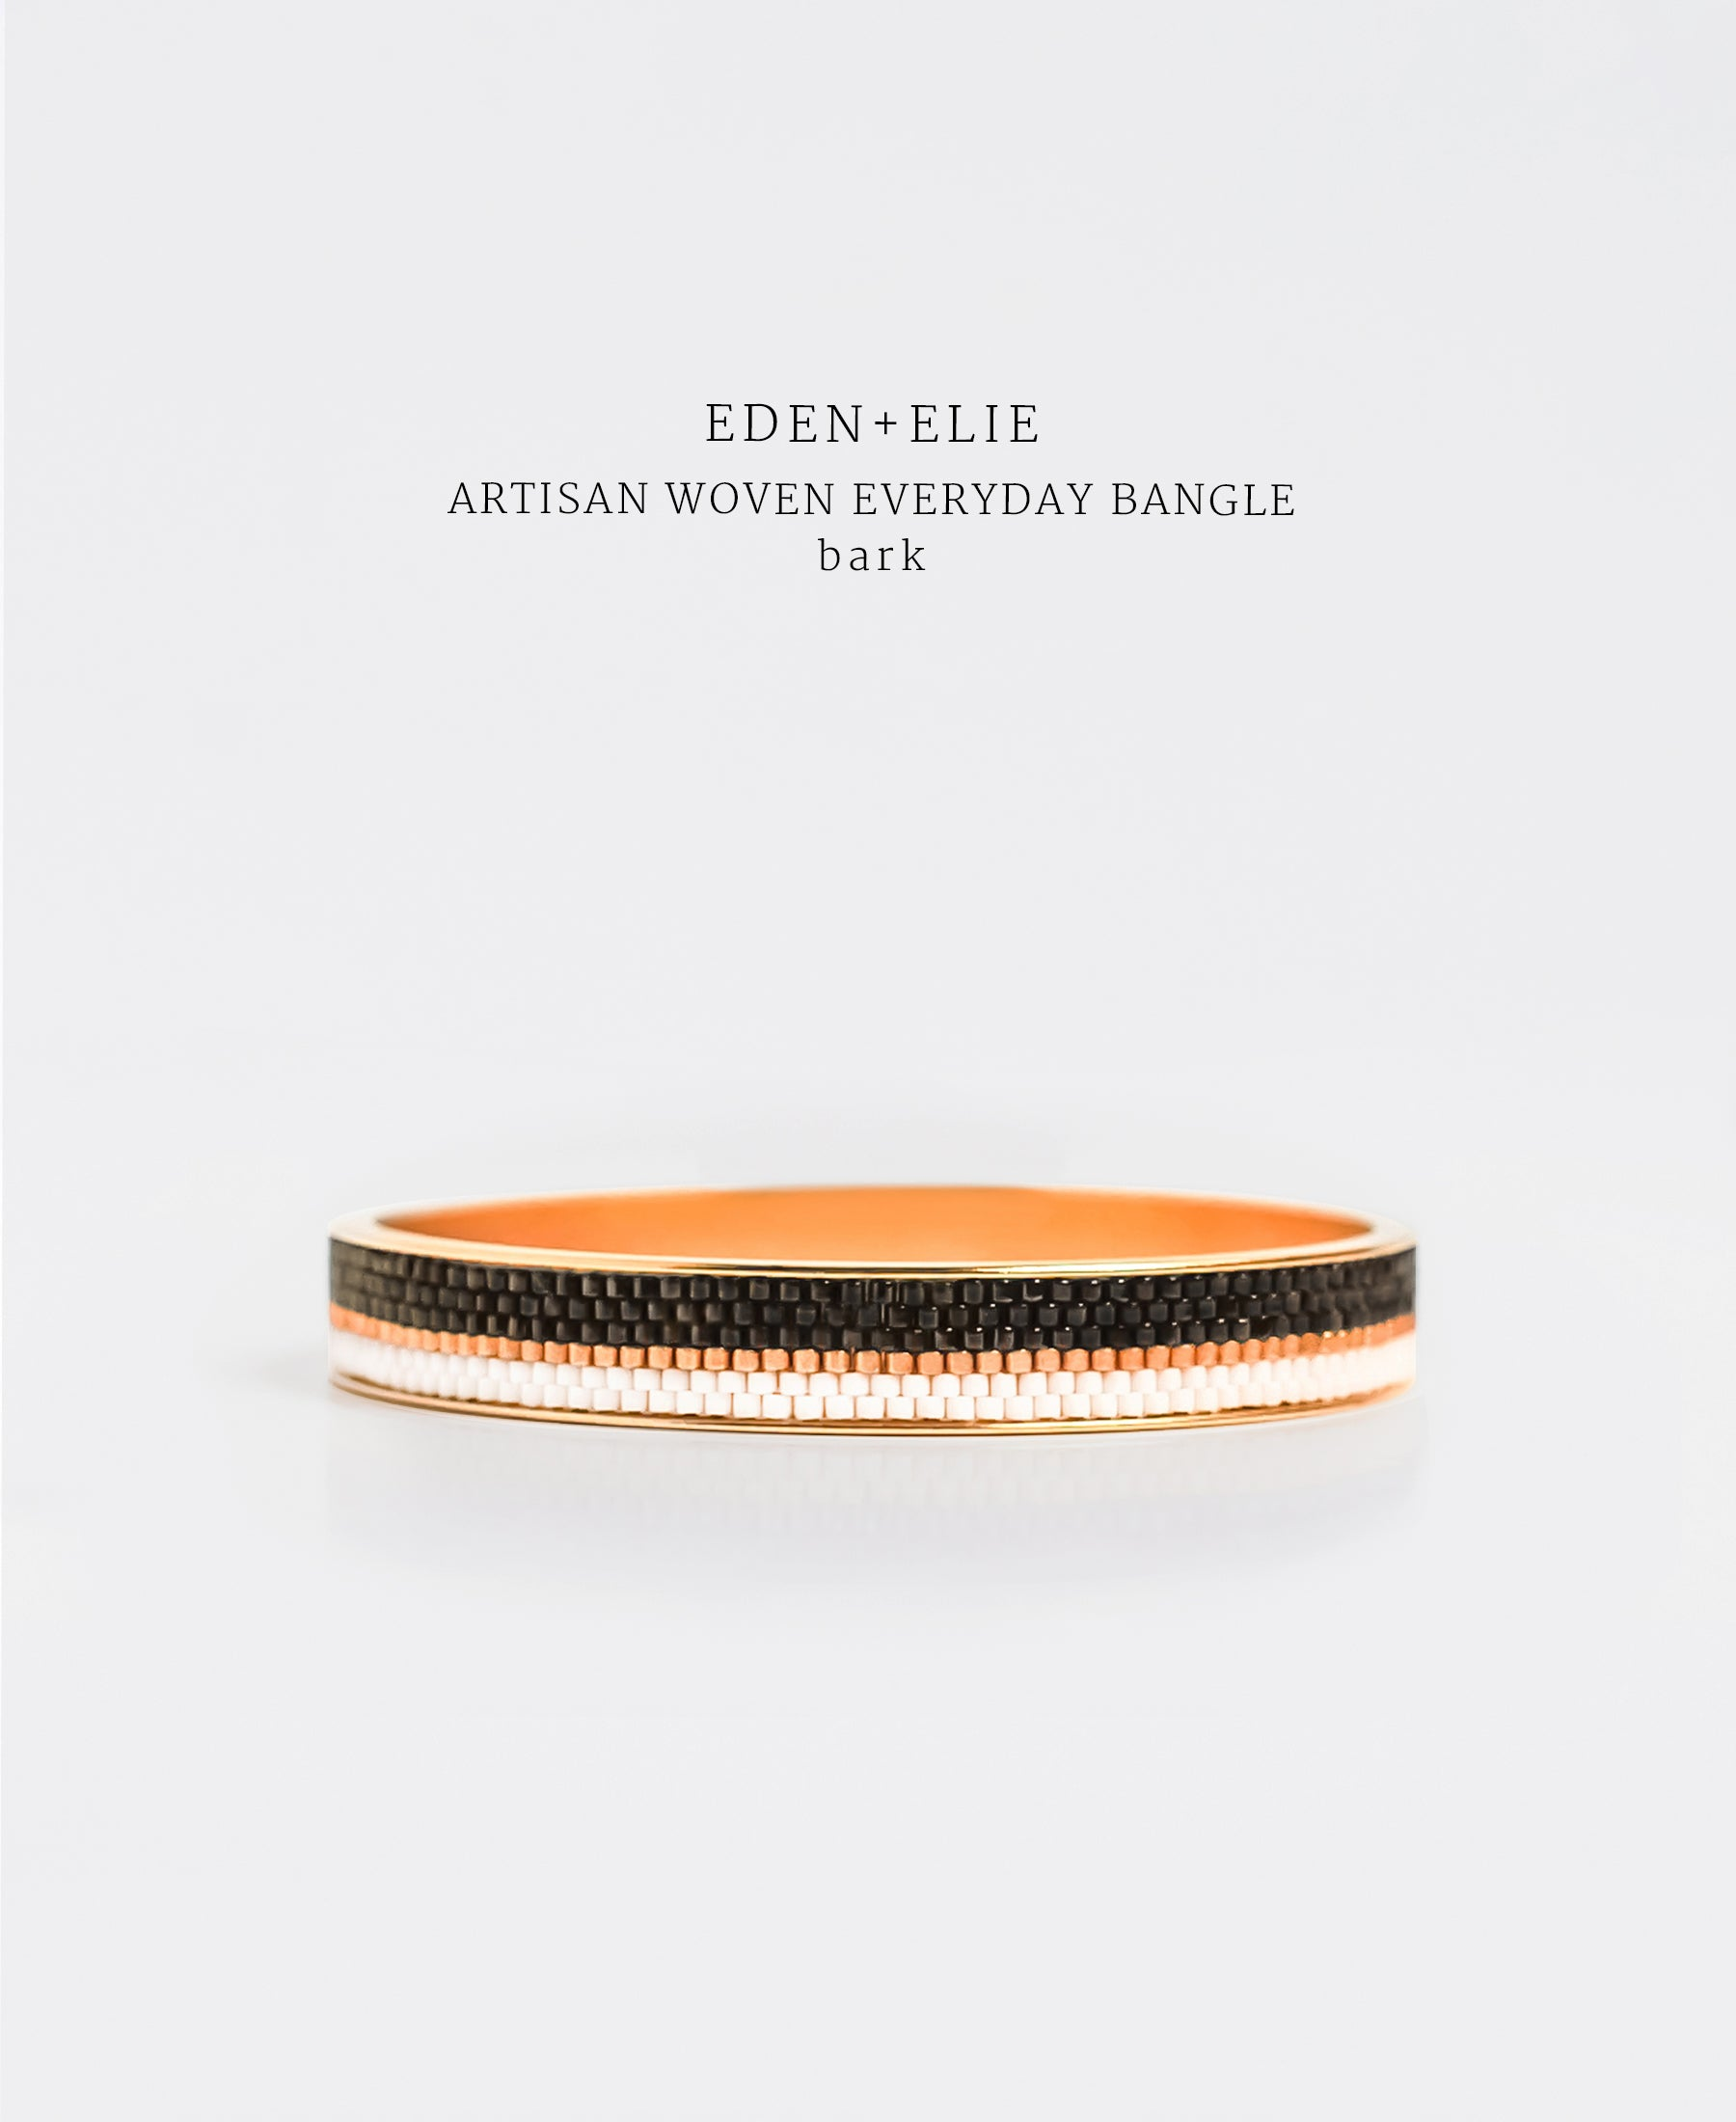 EDEN + ELIE Everyday gold narrow bangle - bark brown